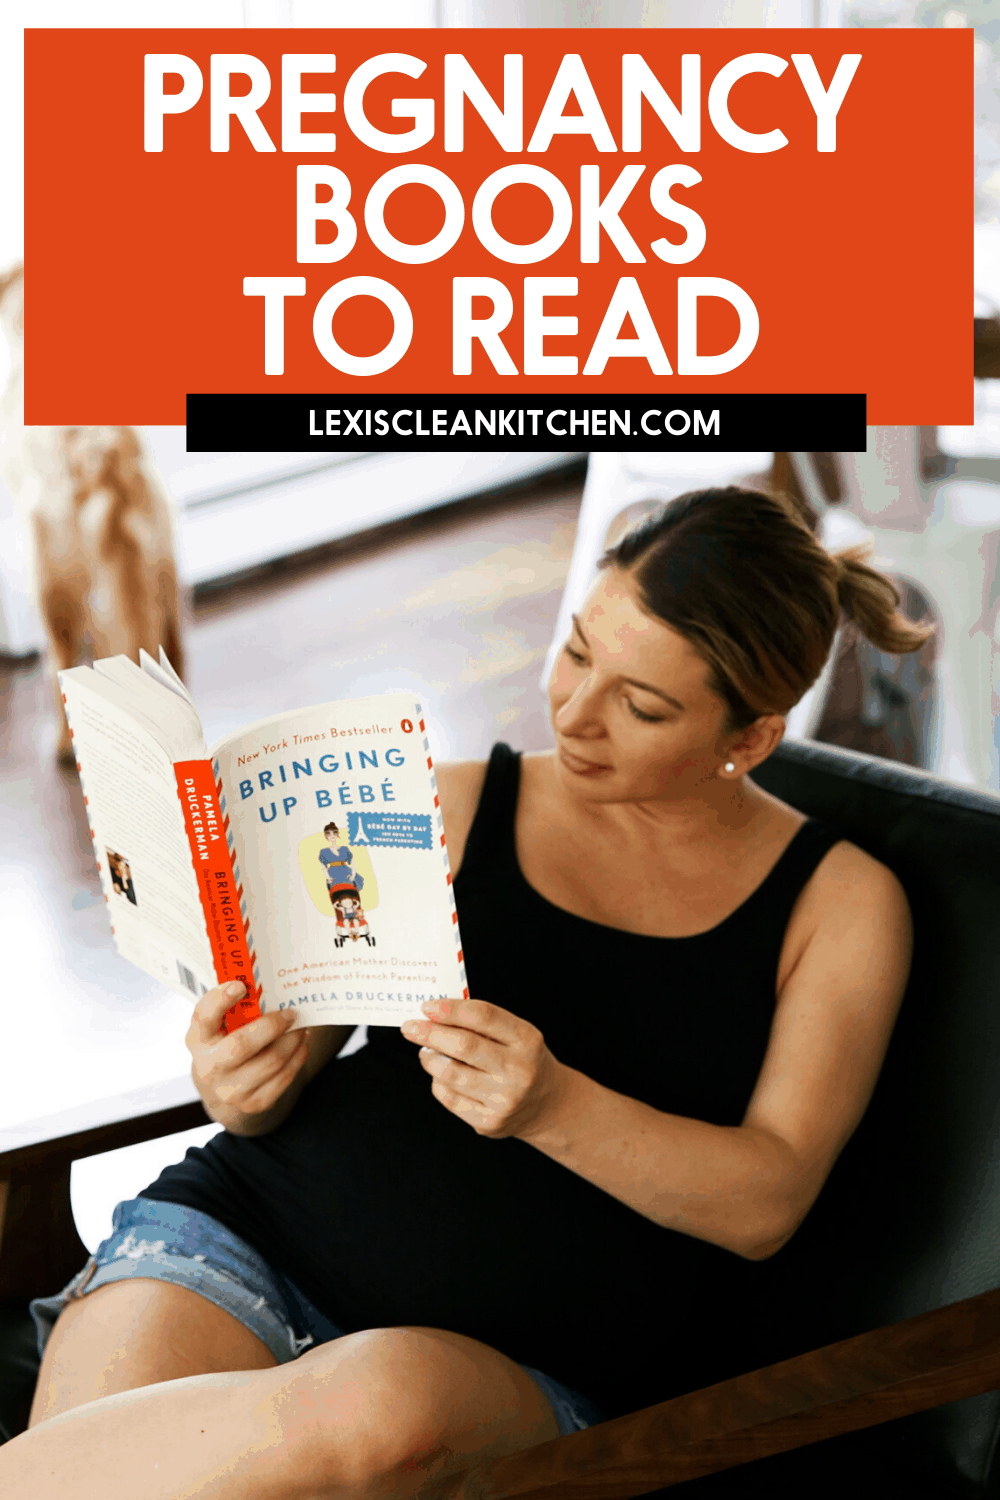 12 Pregnancy Books to Read